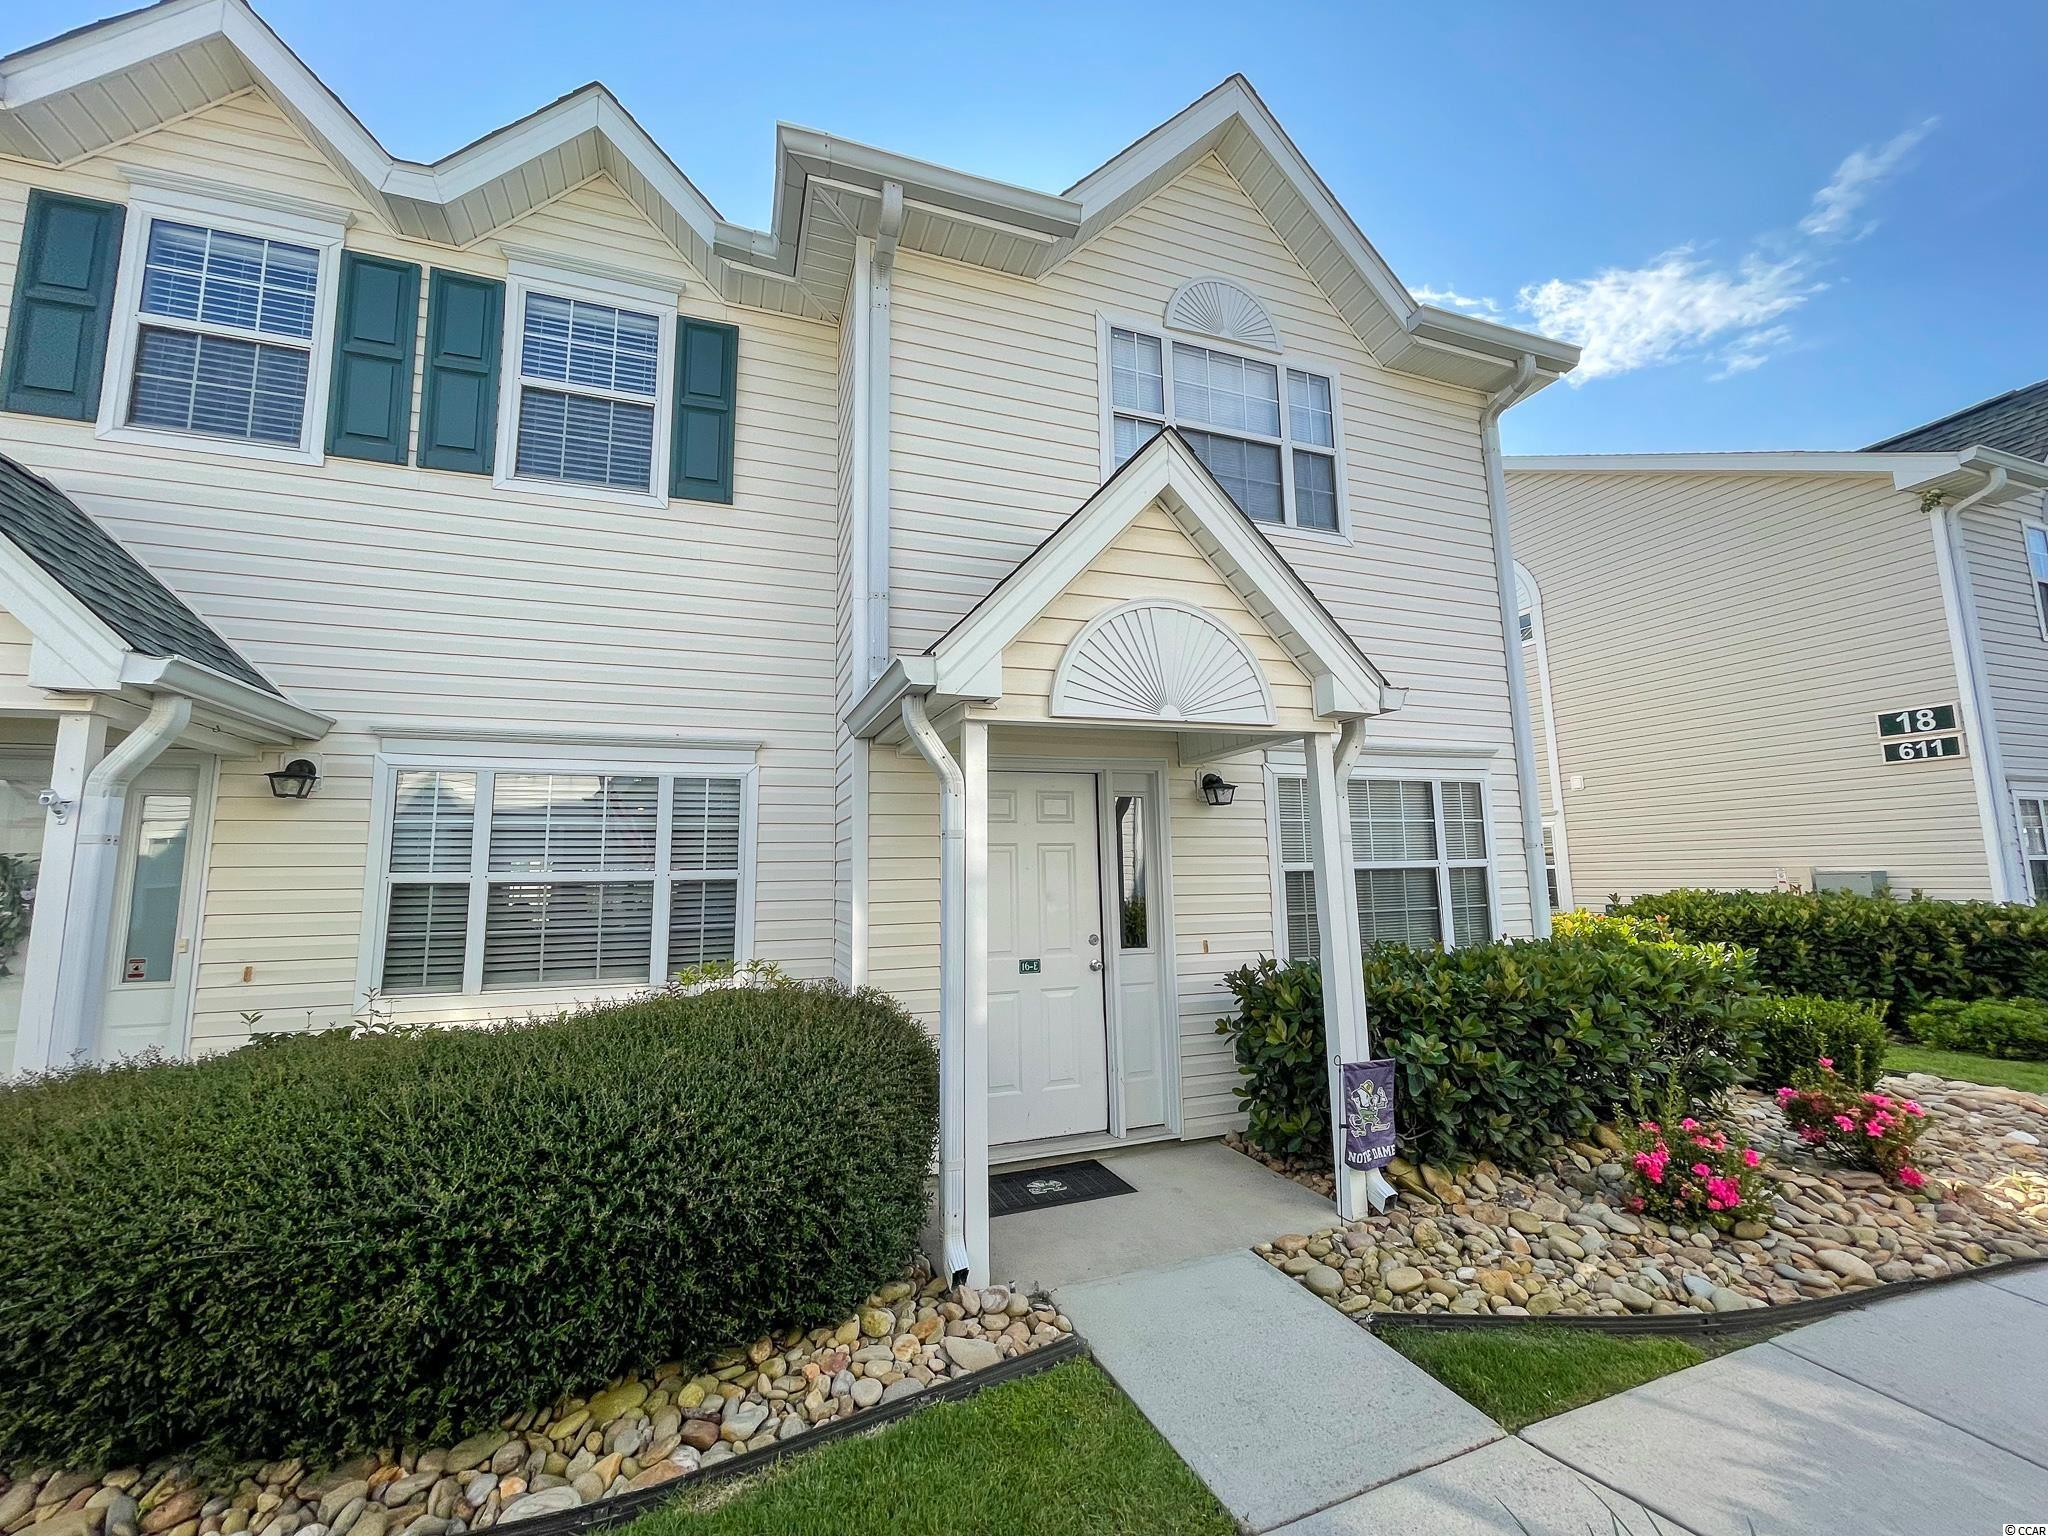 Fantastic location for this 2BR/2.5BA unit at Sea Garden, east of Business 17 in North Myrtle Beach.  This end unit has it's own private patio that is fenced.  If you were looking for a home east of Business 17, this is an amazing opportunity that will not last! Square footage is approximate & not guaranteed. Buyer is responsible for verification.